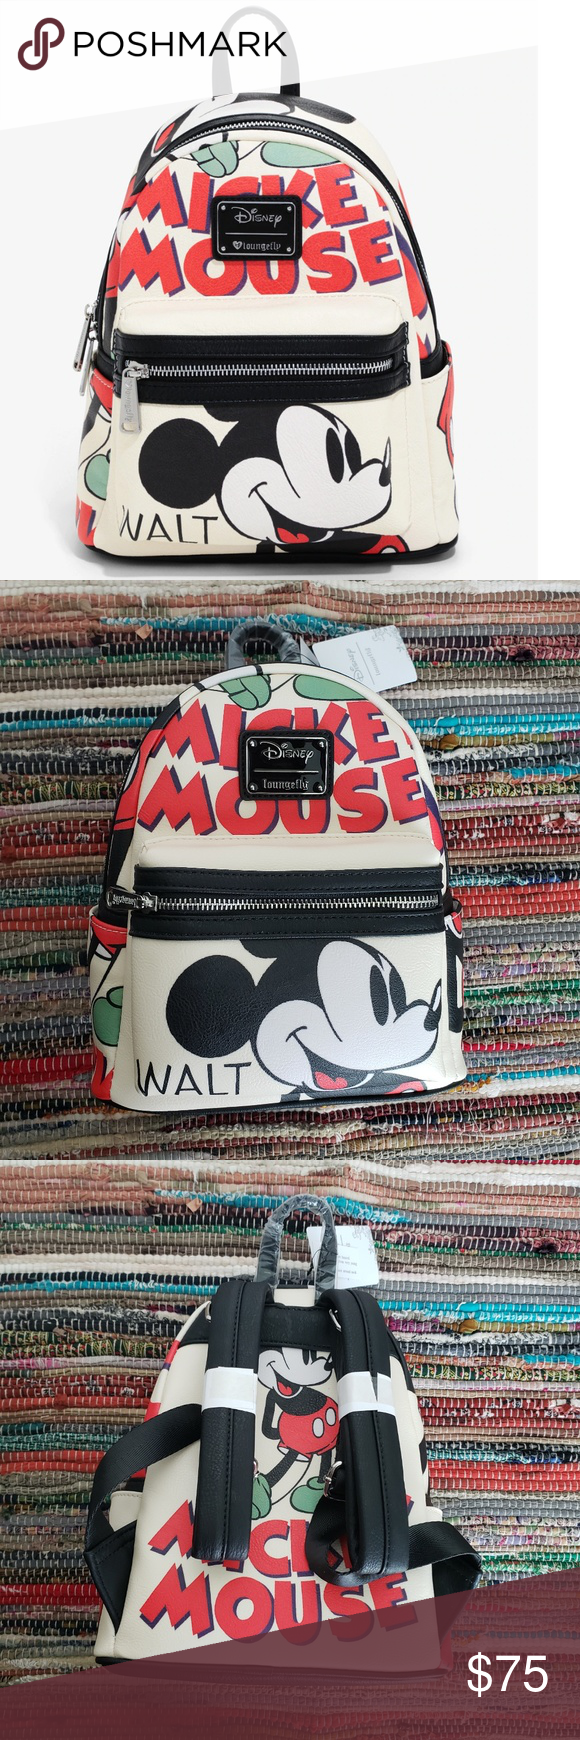 Disney Mickey Mouse Illustration Mini Backpack This Cream Colored Mini Backpack From Loungefly X Dis Mickey Mouse Illustration Mouse Illustration Mini Backpack